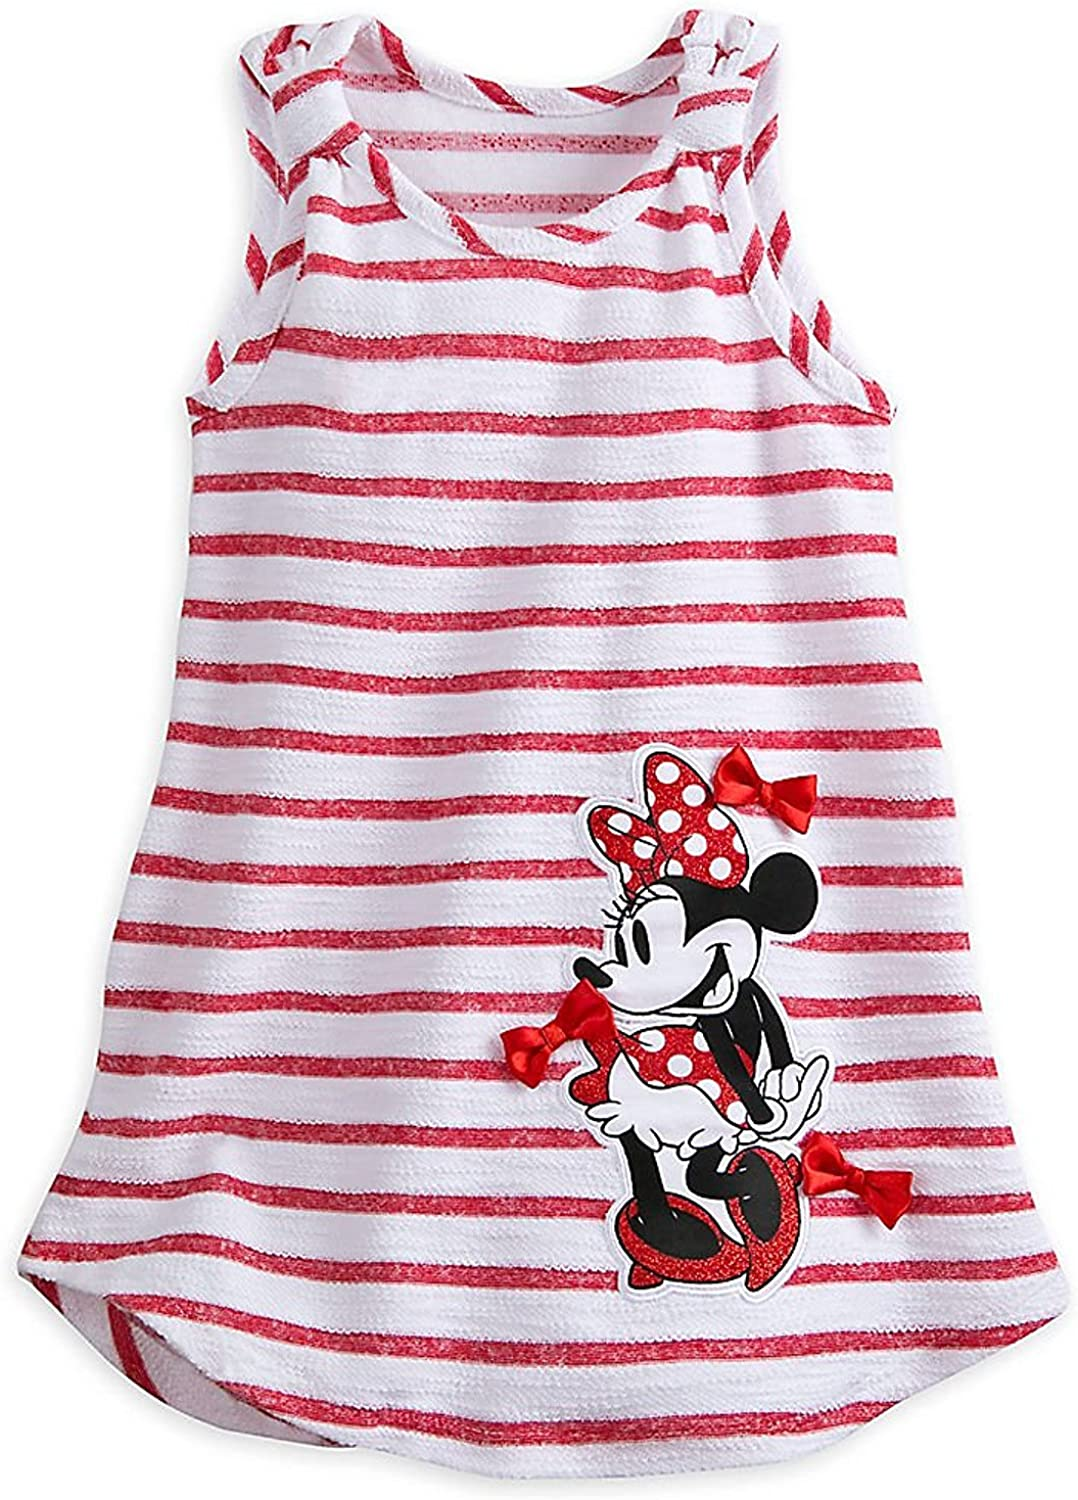 Disney Minnie Mouse Swim Cover Up for Girls White